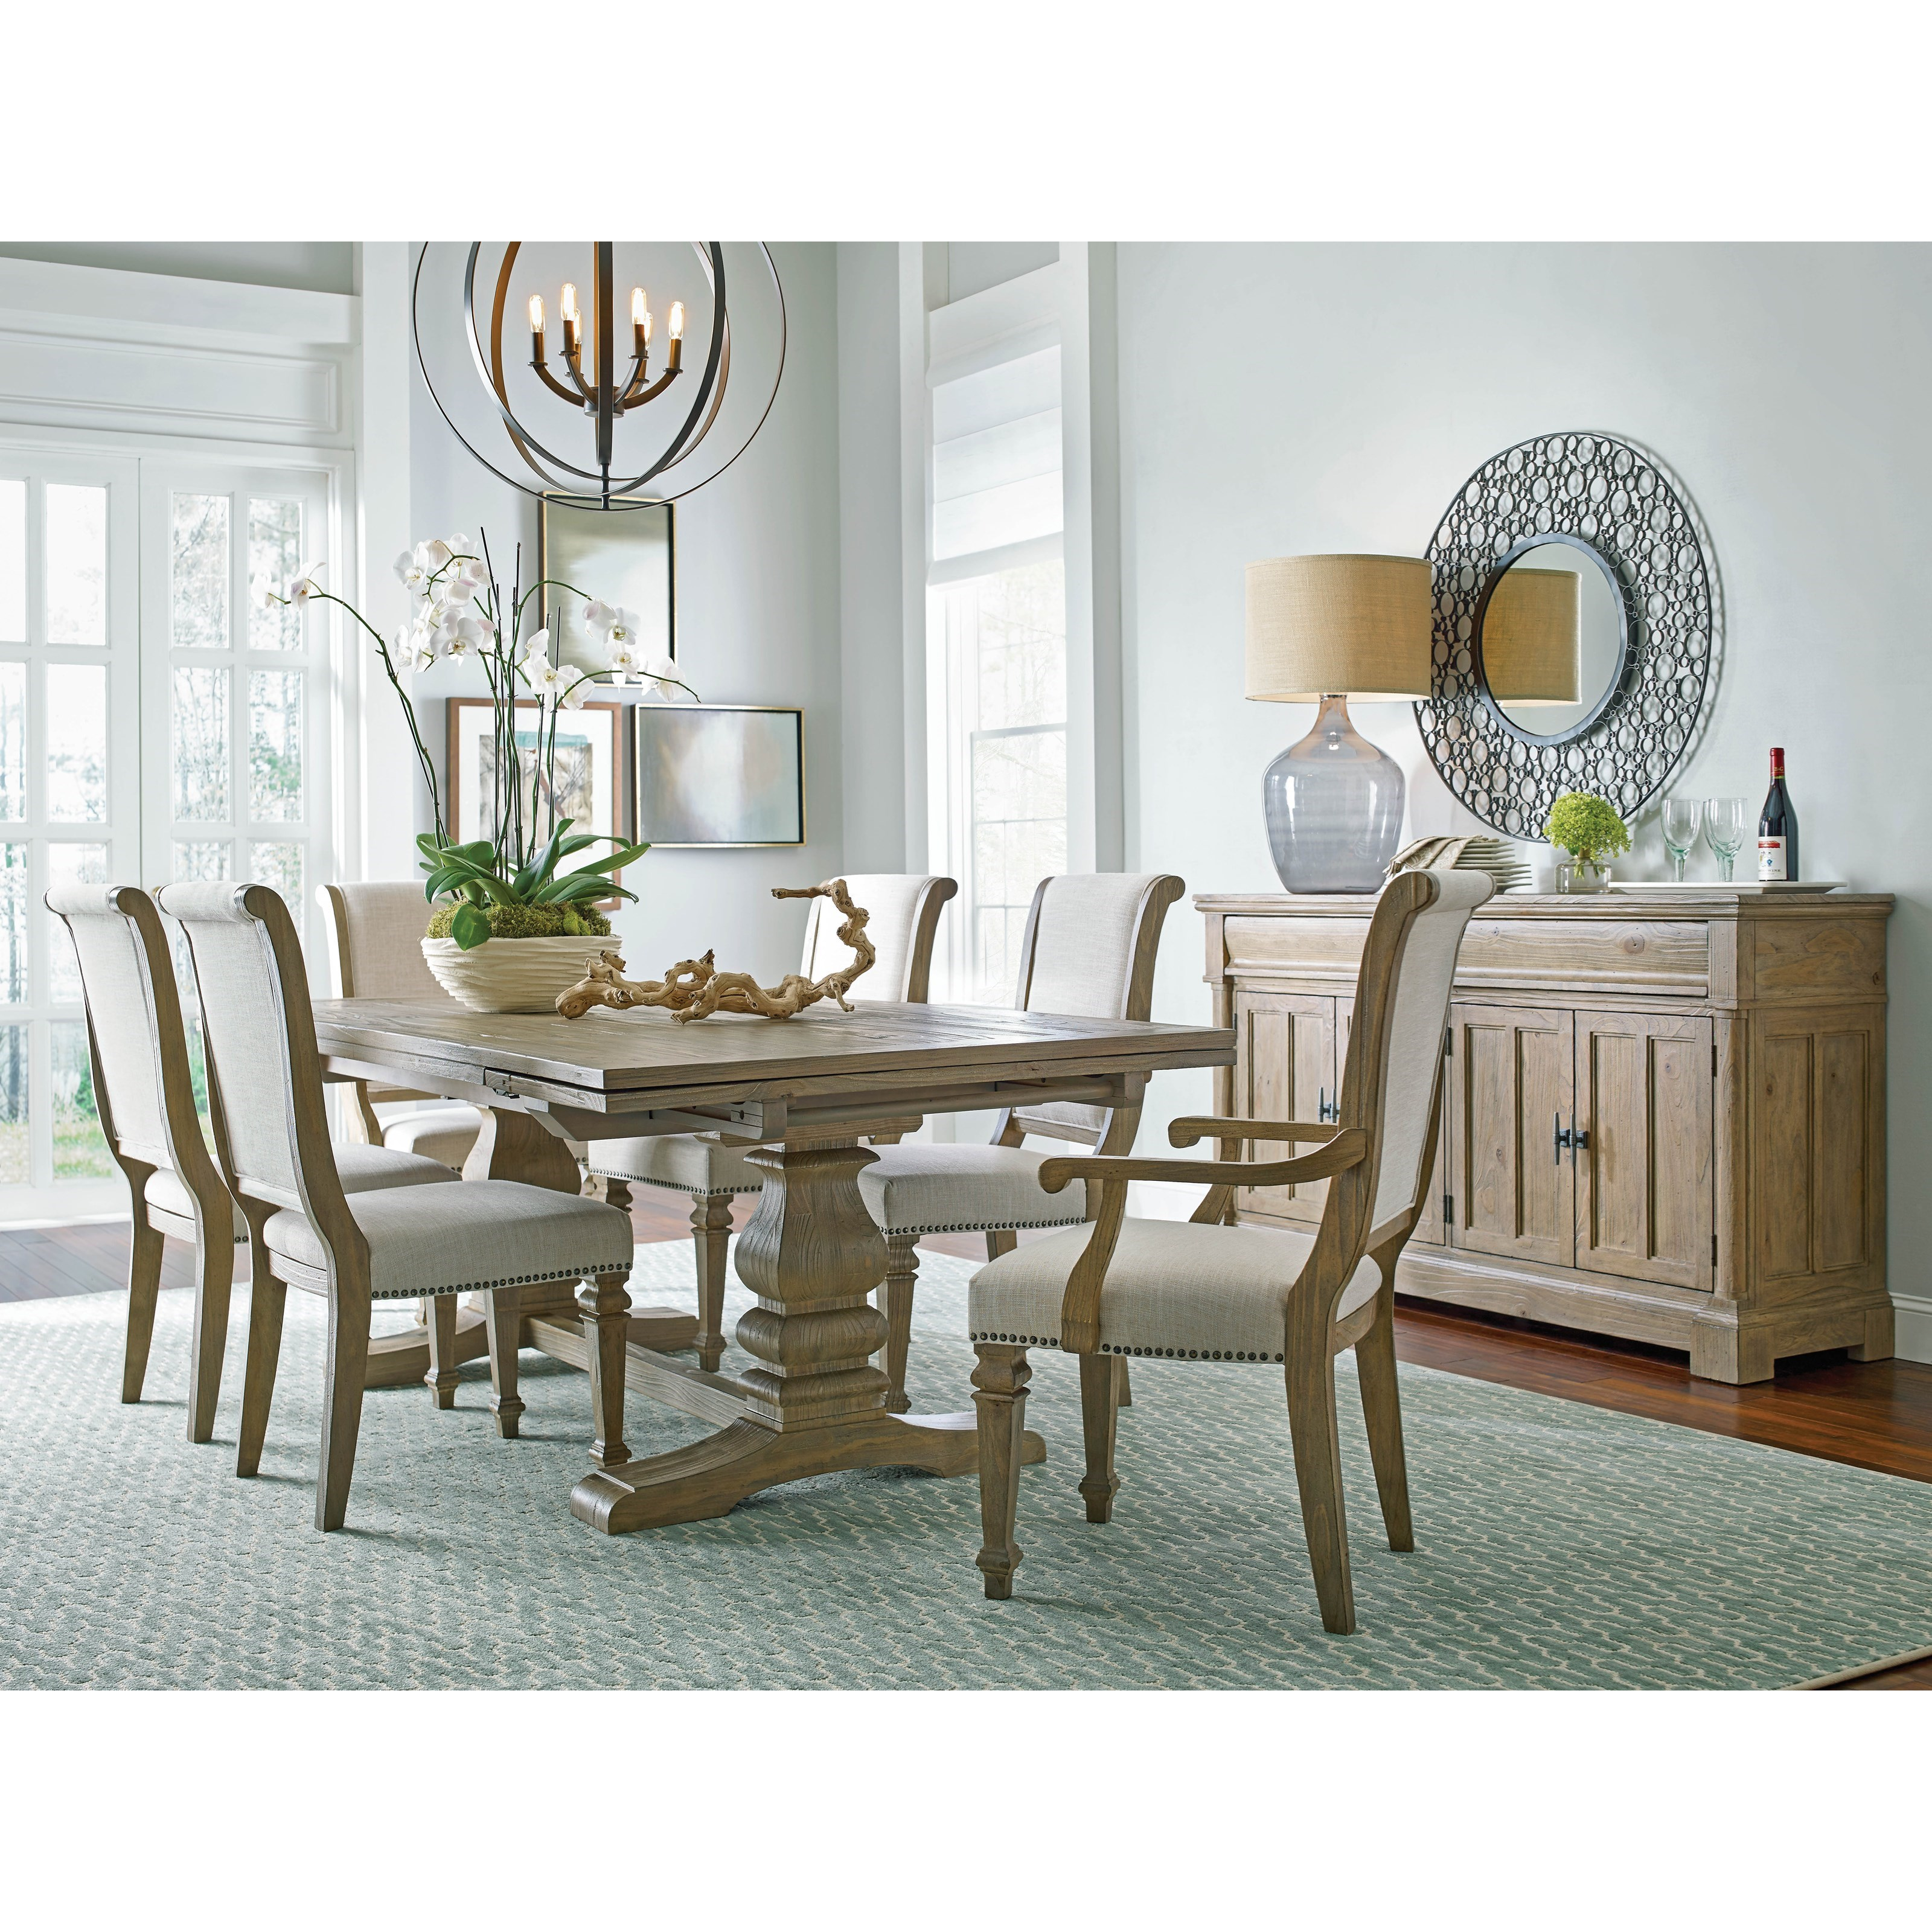 Kincaid Dining Room Set: Kincaid Furniture Stone Street Seven Piece Dining Set With Self-Storing Leaves